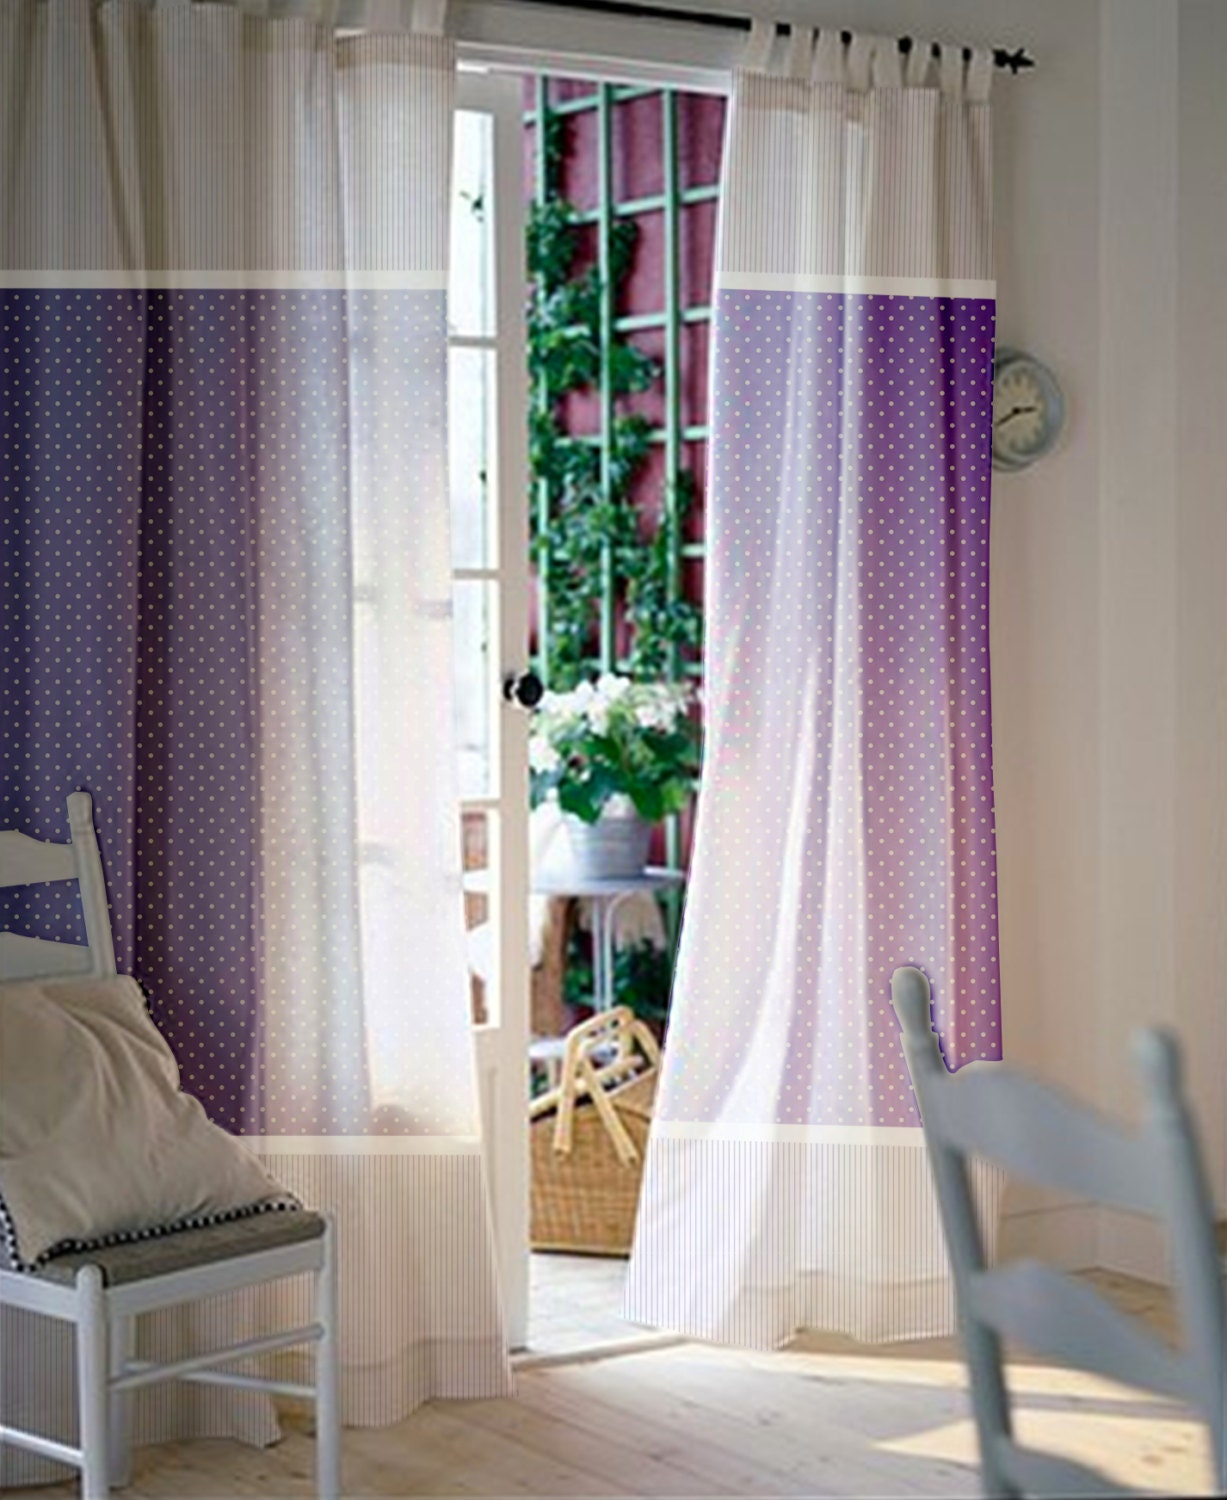 Popular items for tab top curtains on Etsy